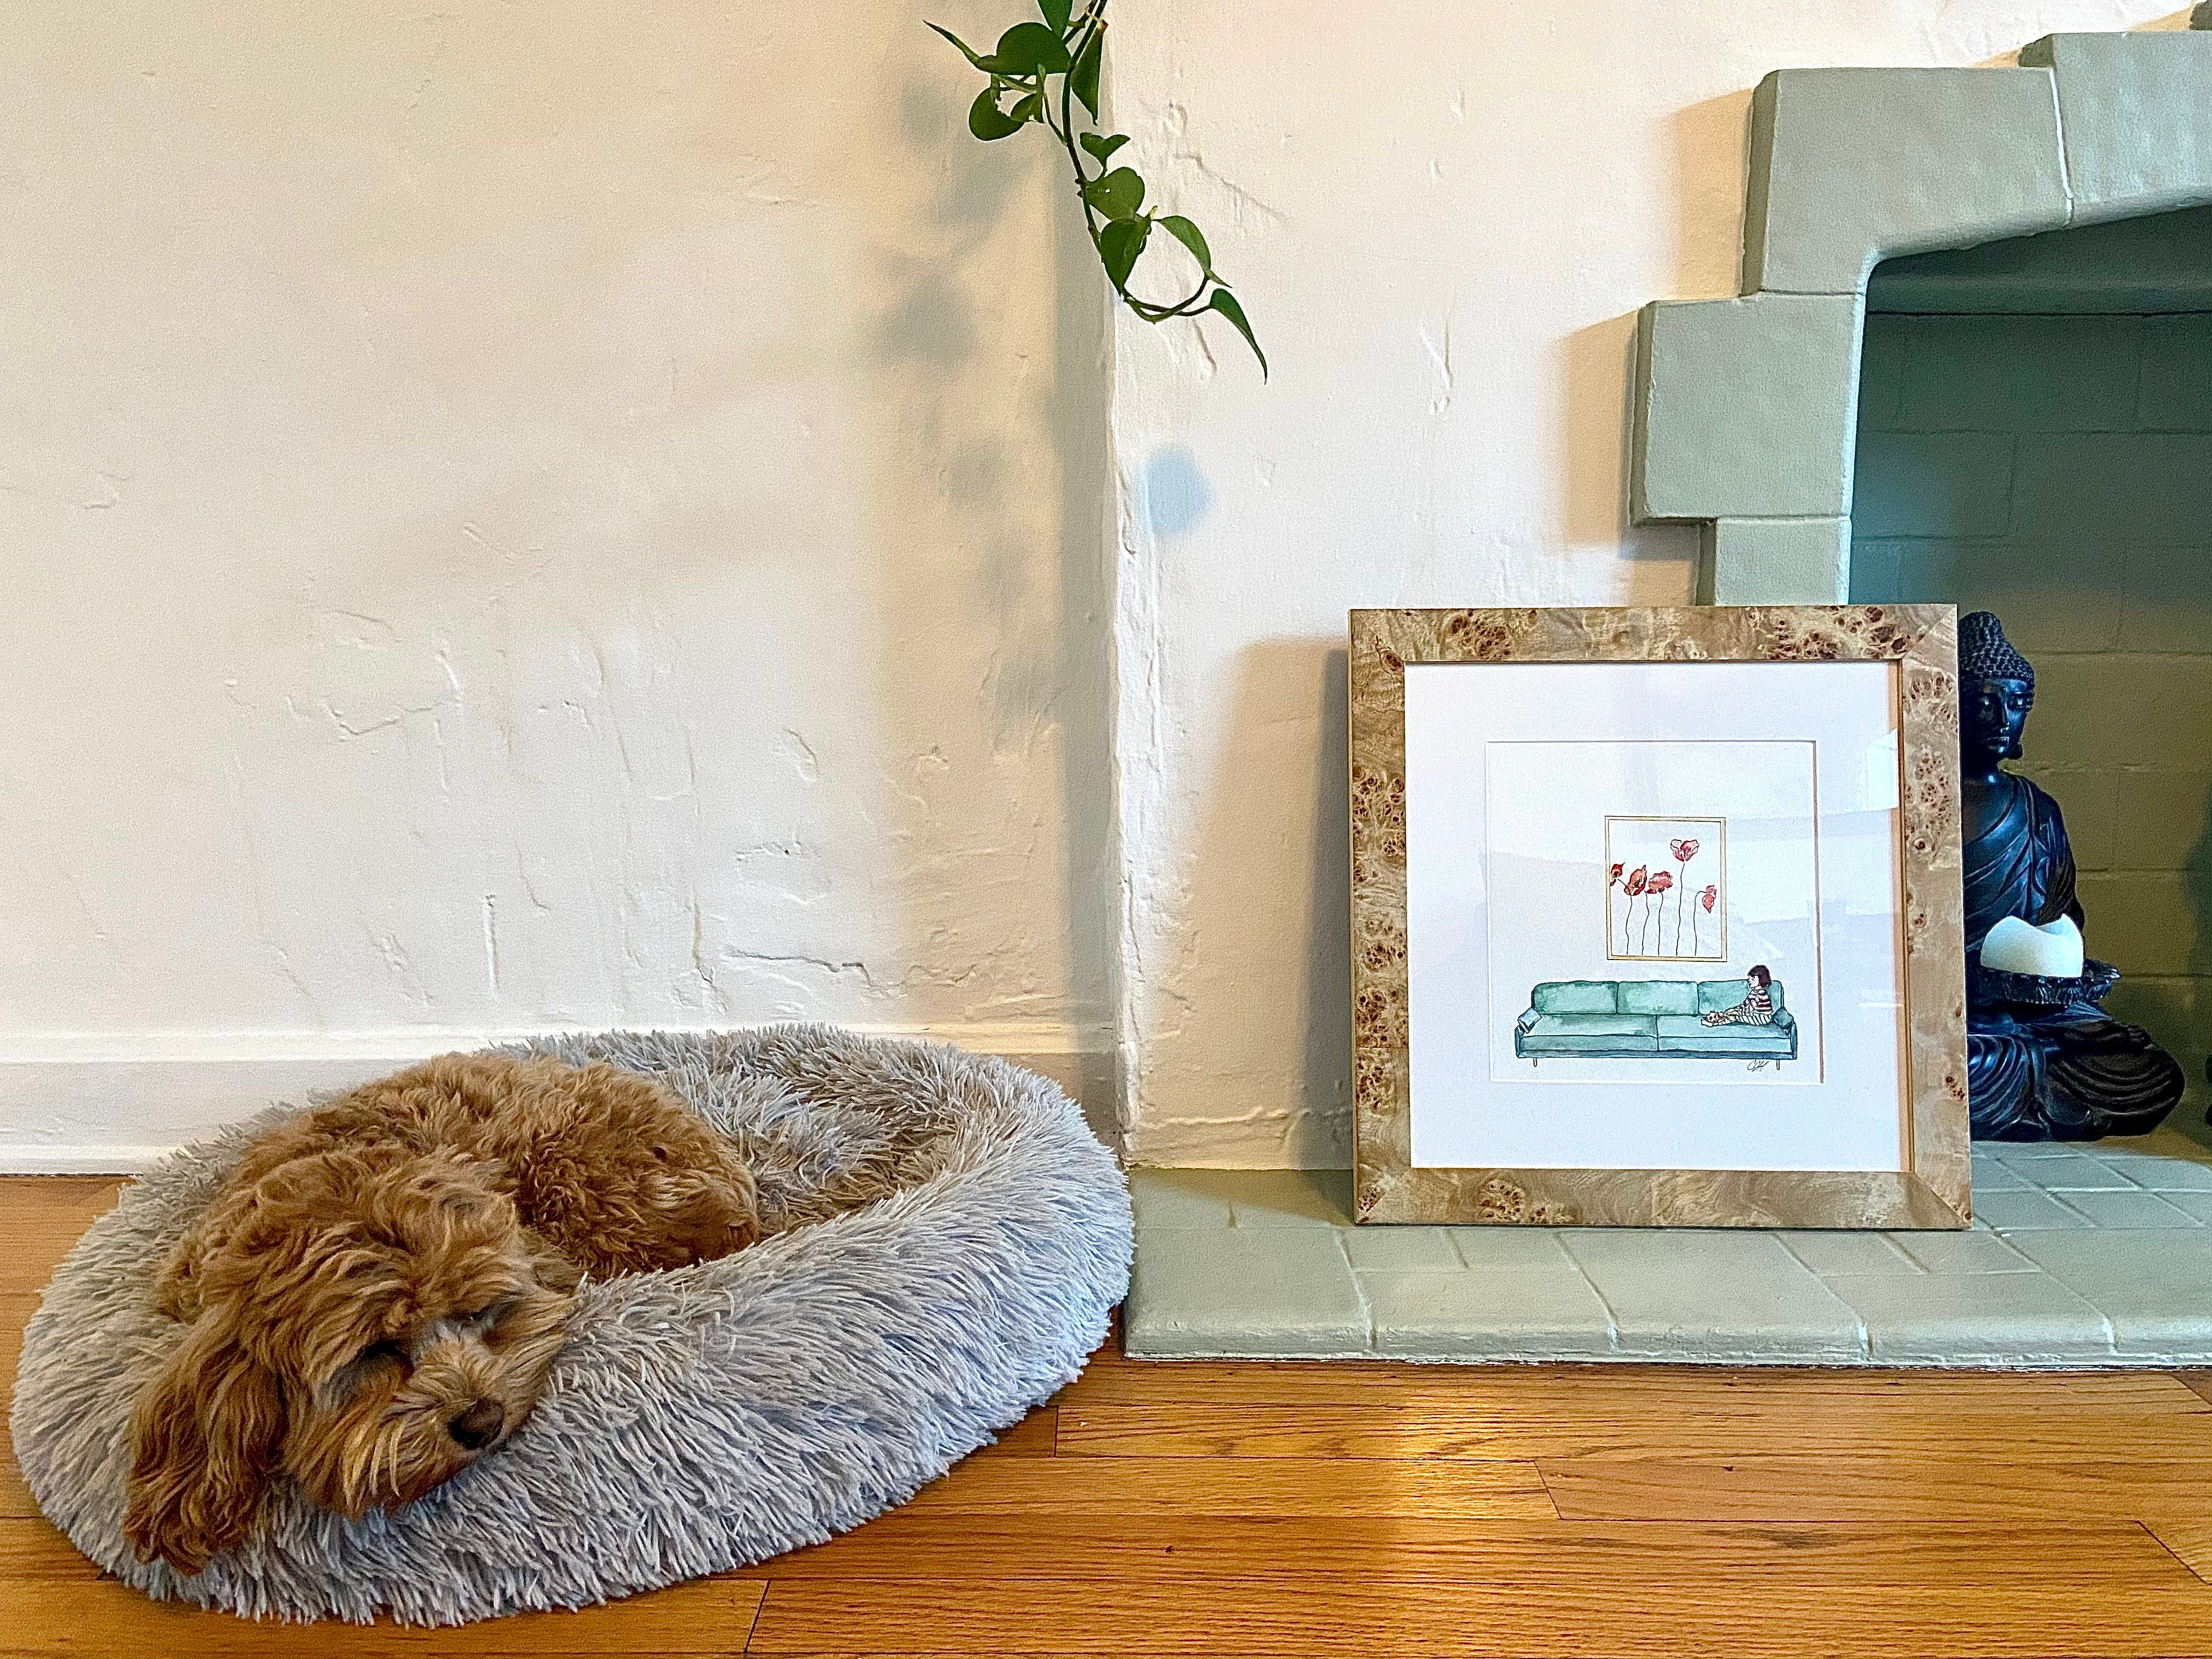 framed watercolor illustration from children's book with dog